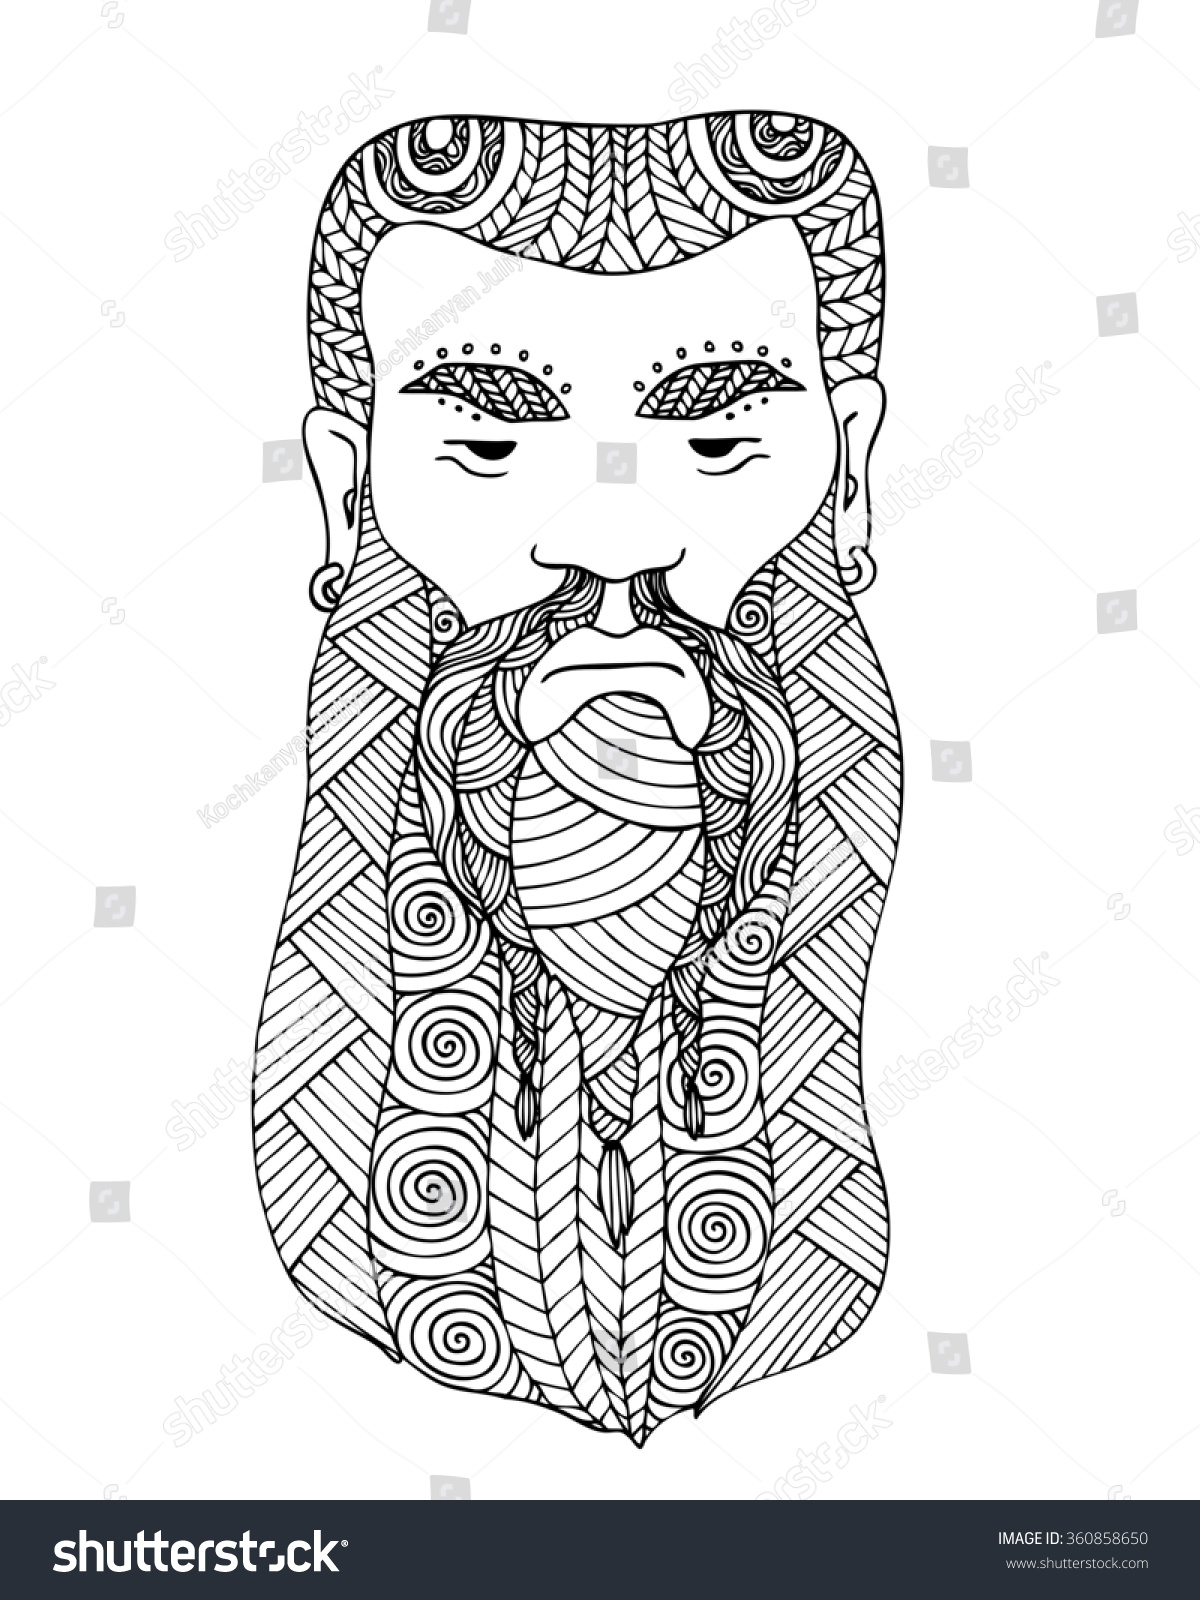 Adults colouring book pages - Adult Coloring Book Page Design With The Face Of A Viking Viking Man Logo